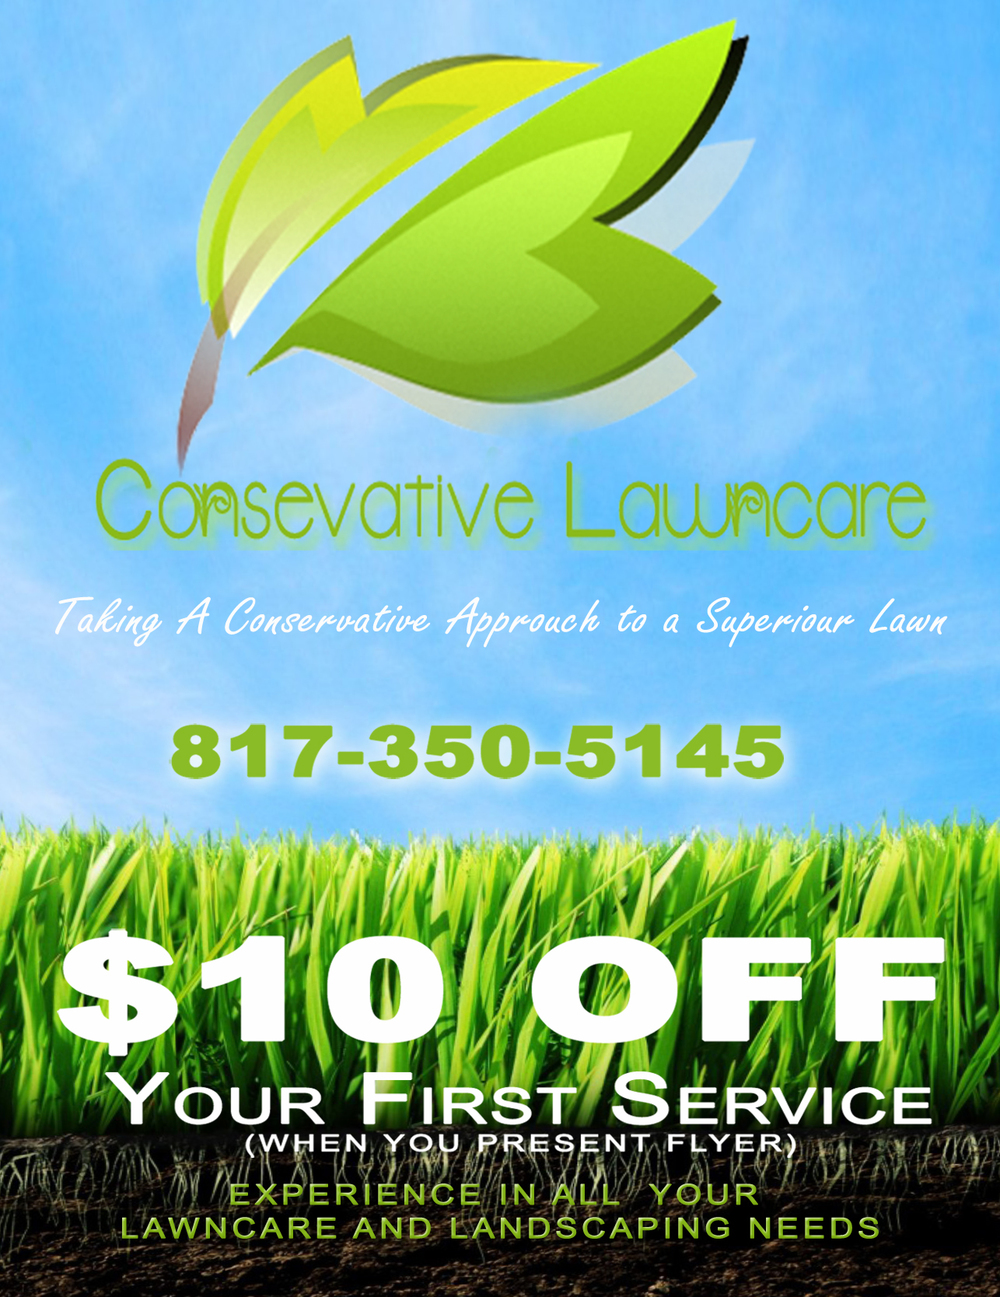 blank lawn care flyers image tips lawn care flyers design marketing portfolio blank lawn care flyers